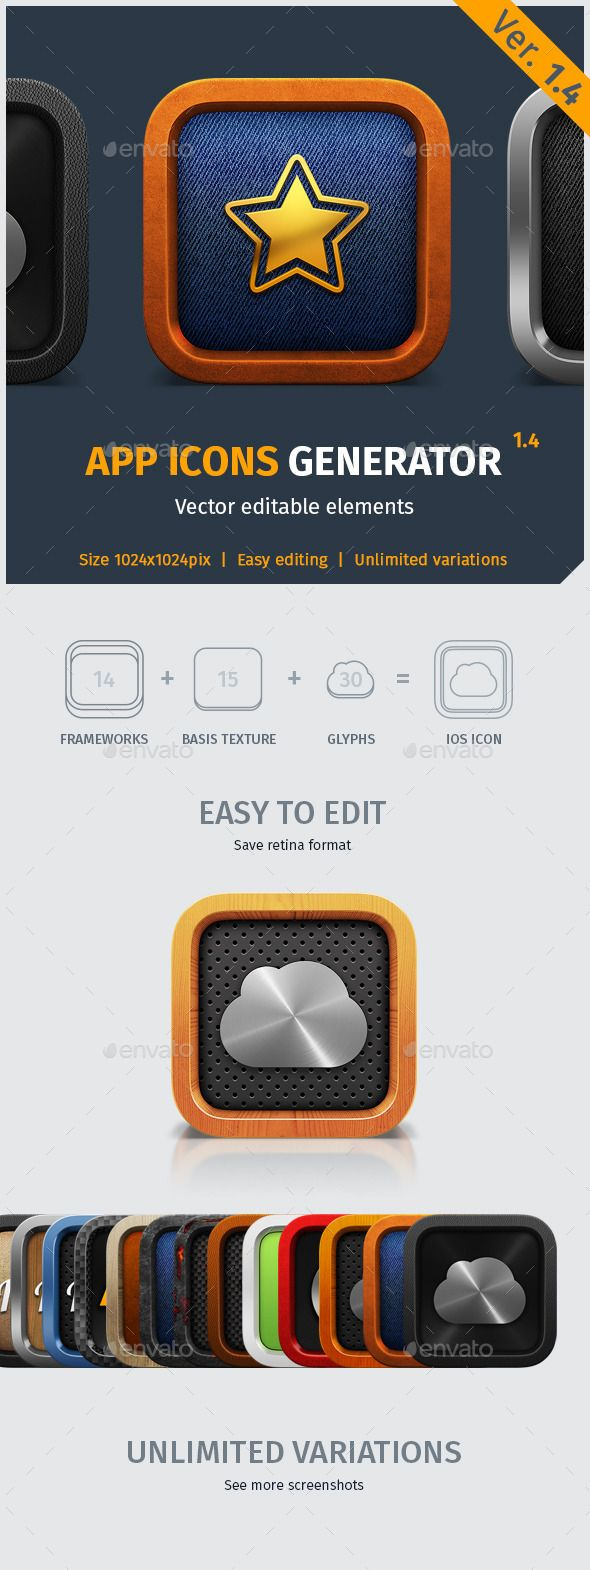 App Icon Generator V.1.4 by TIT0 Generator icons for IOS and Android applications. Easy Customization and editing. High quality and unique design for your applicat